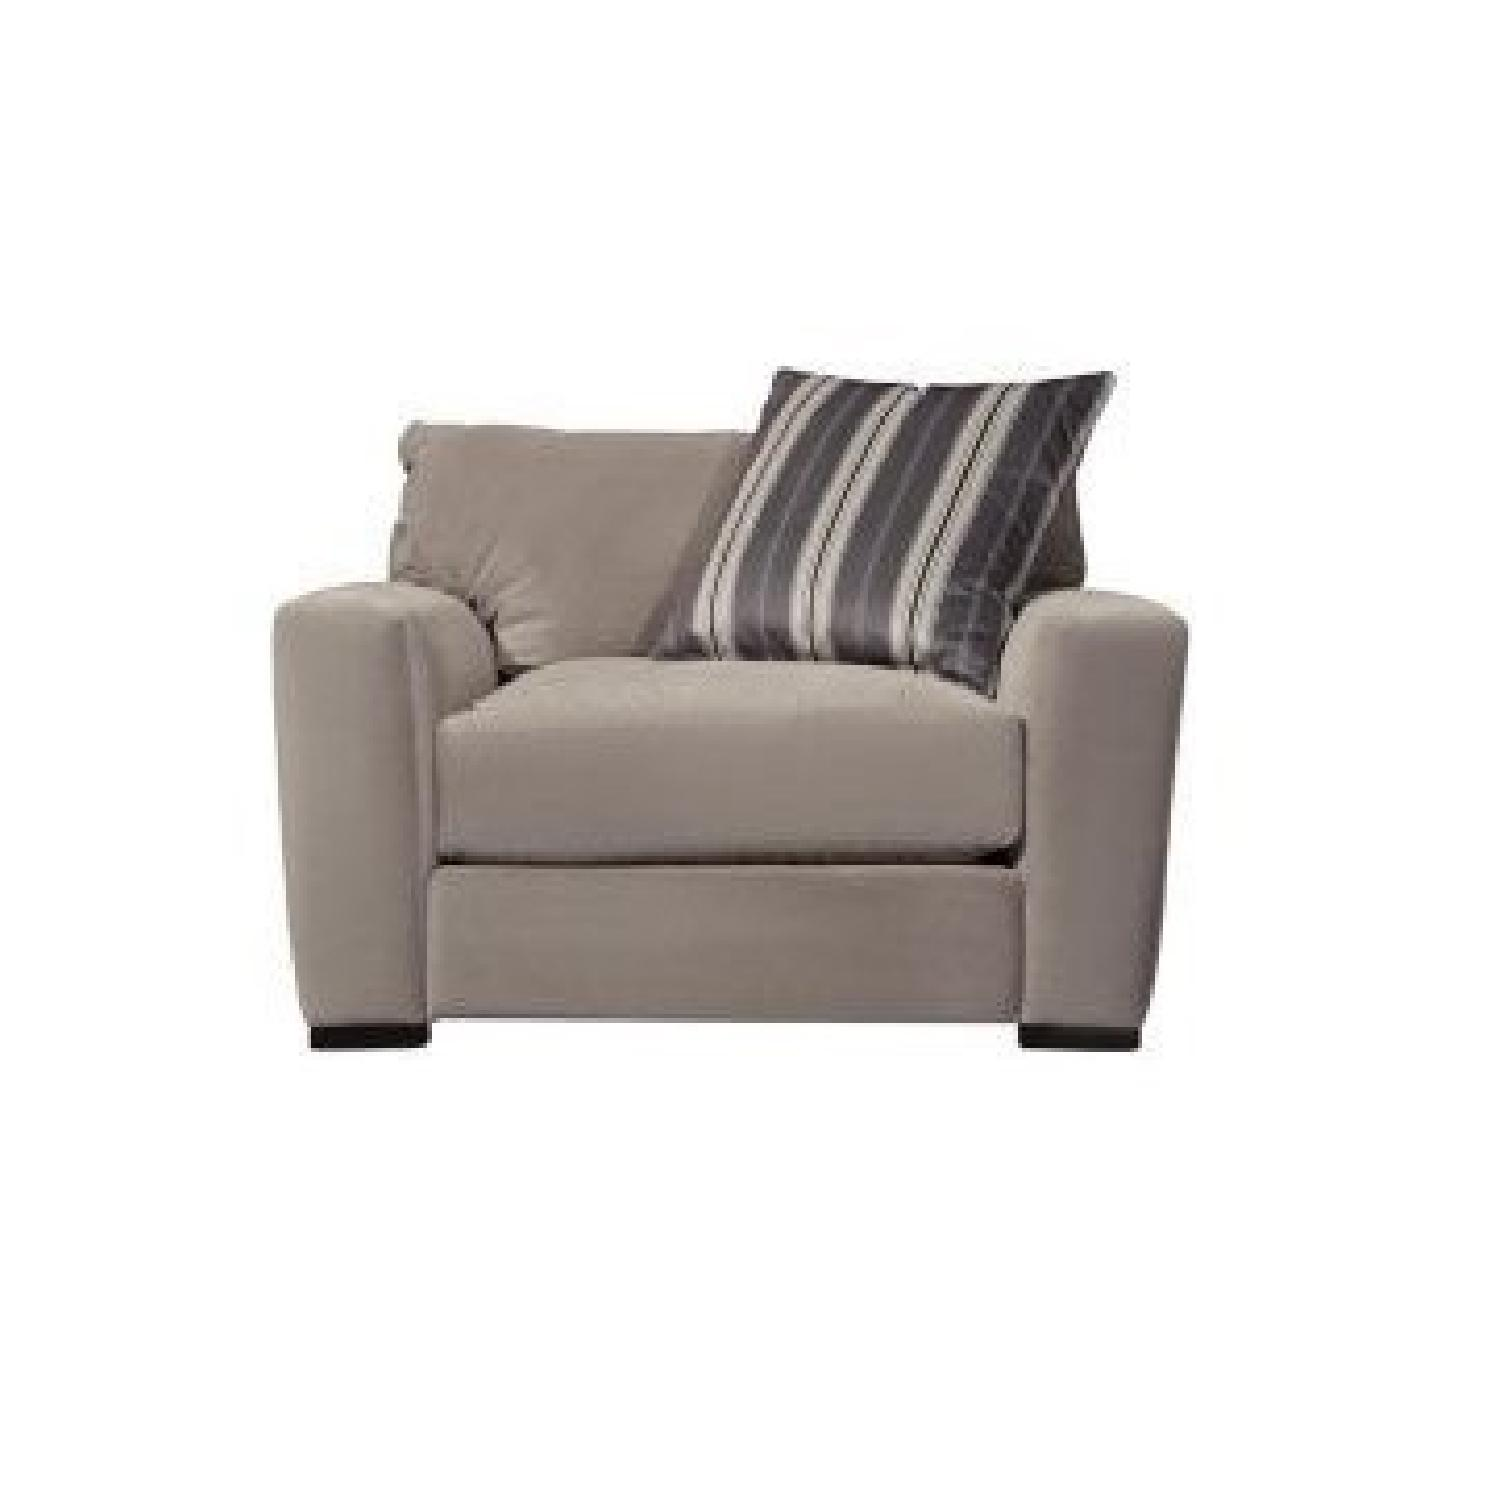 Raymour & Flanigan Carlin Microfiber Sofa + Chair - image-5